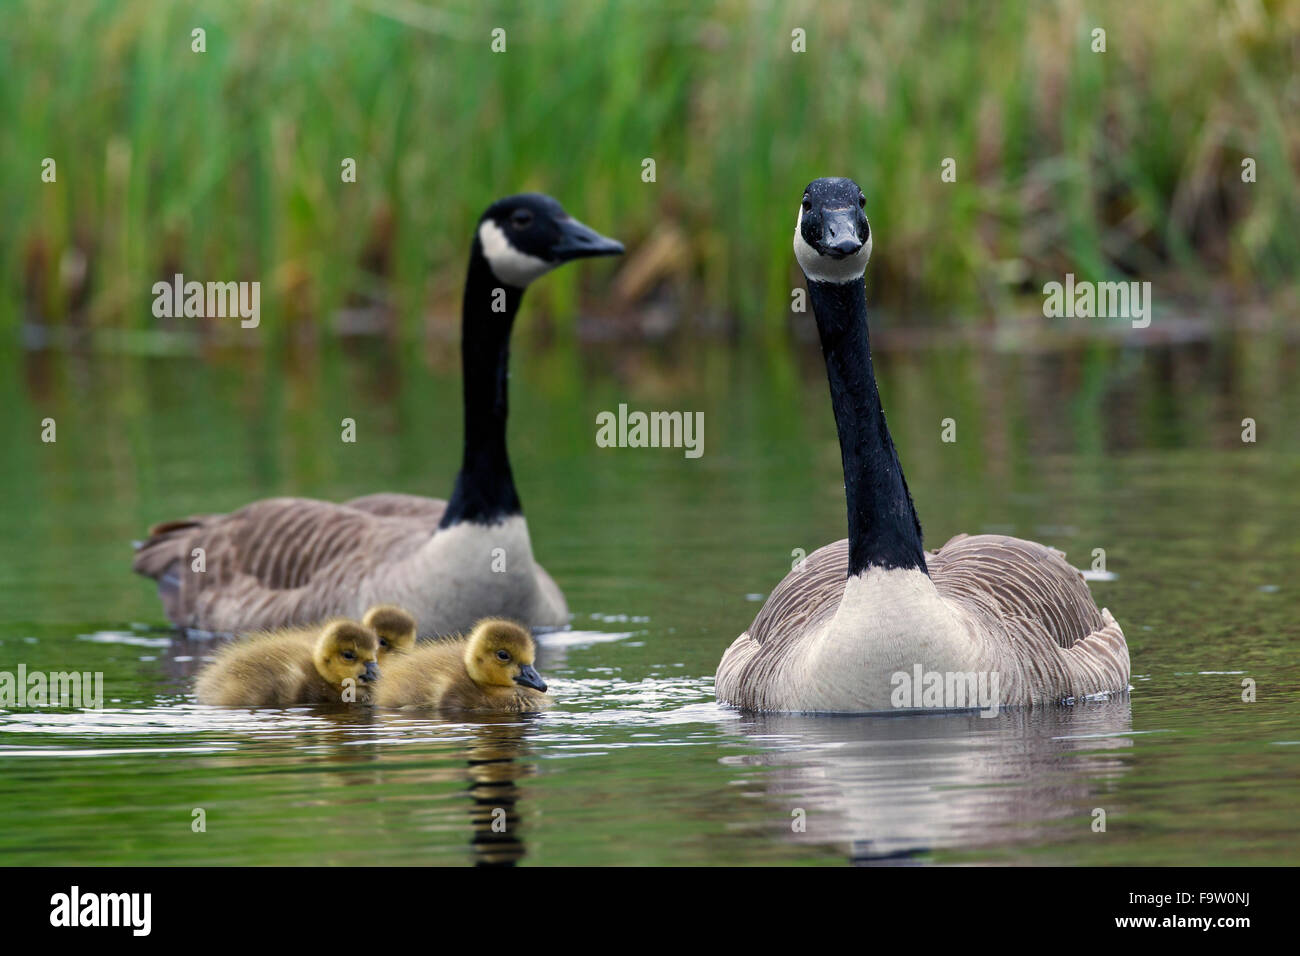 Canada geese (Branta canadensis) parents swimming with three goslings in lake - Stock Image